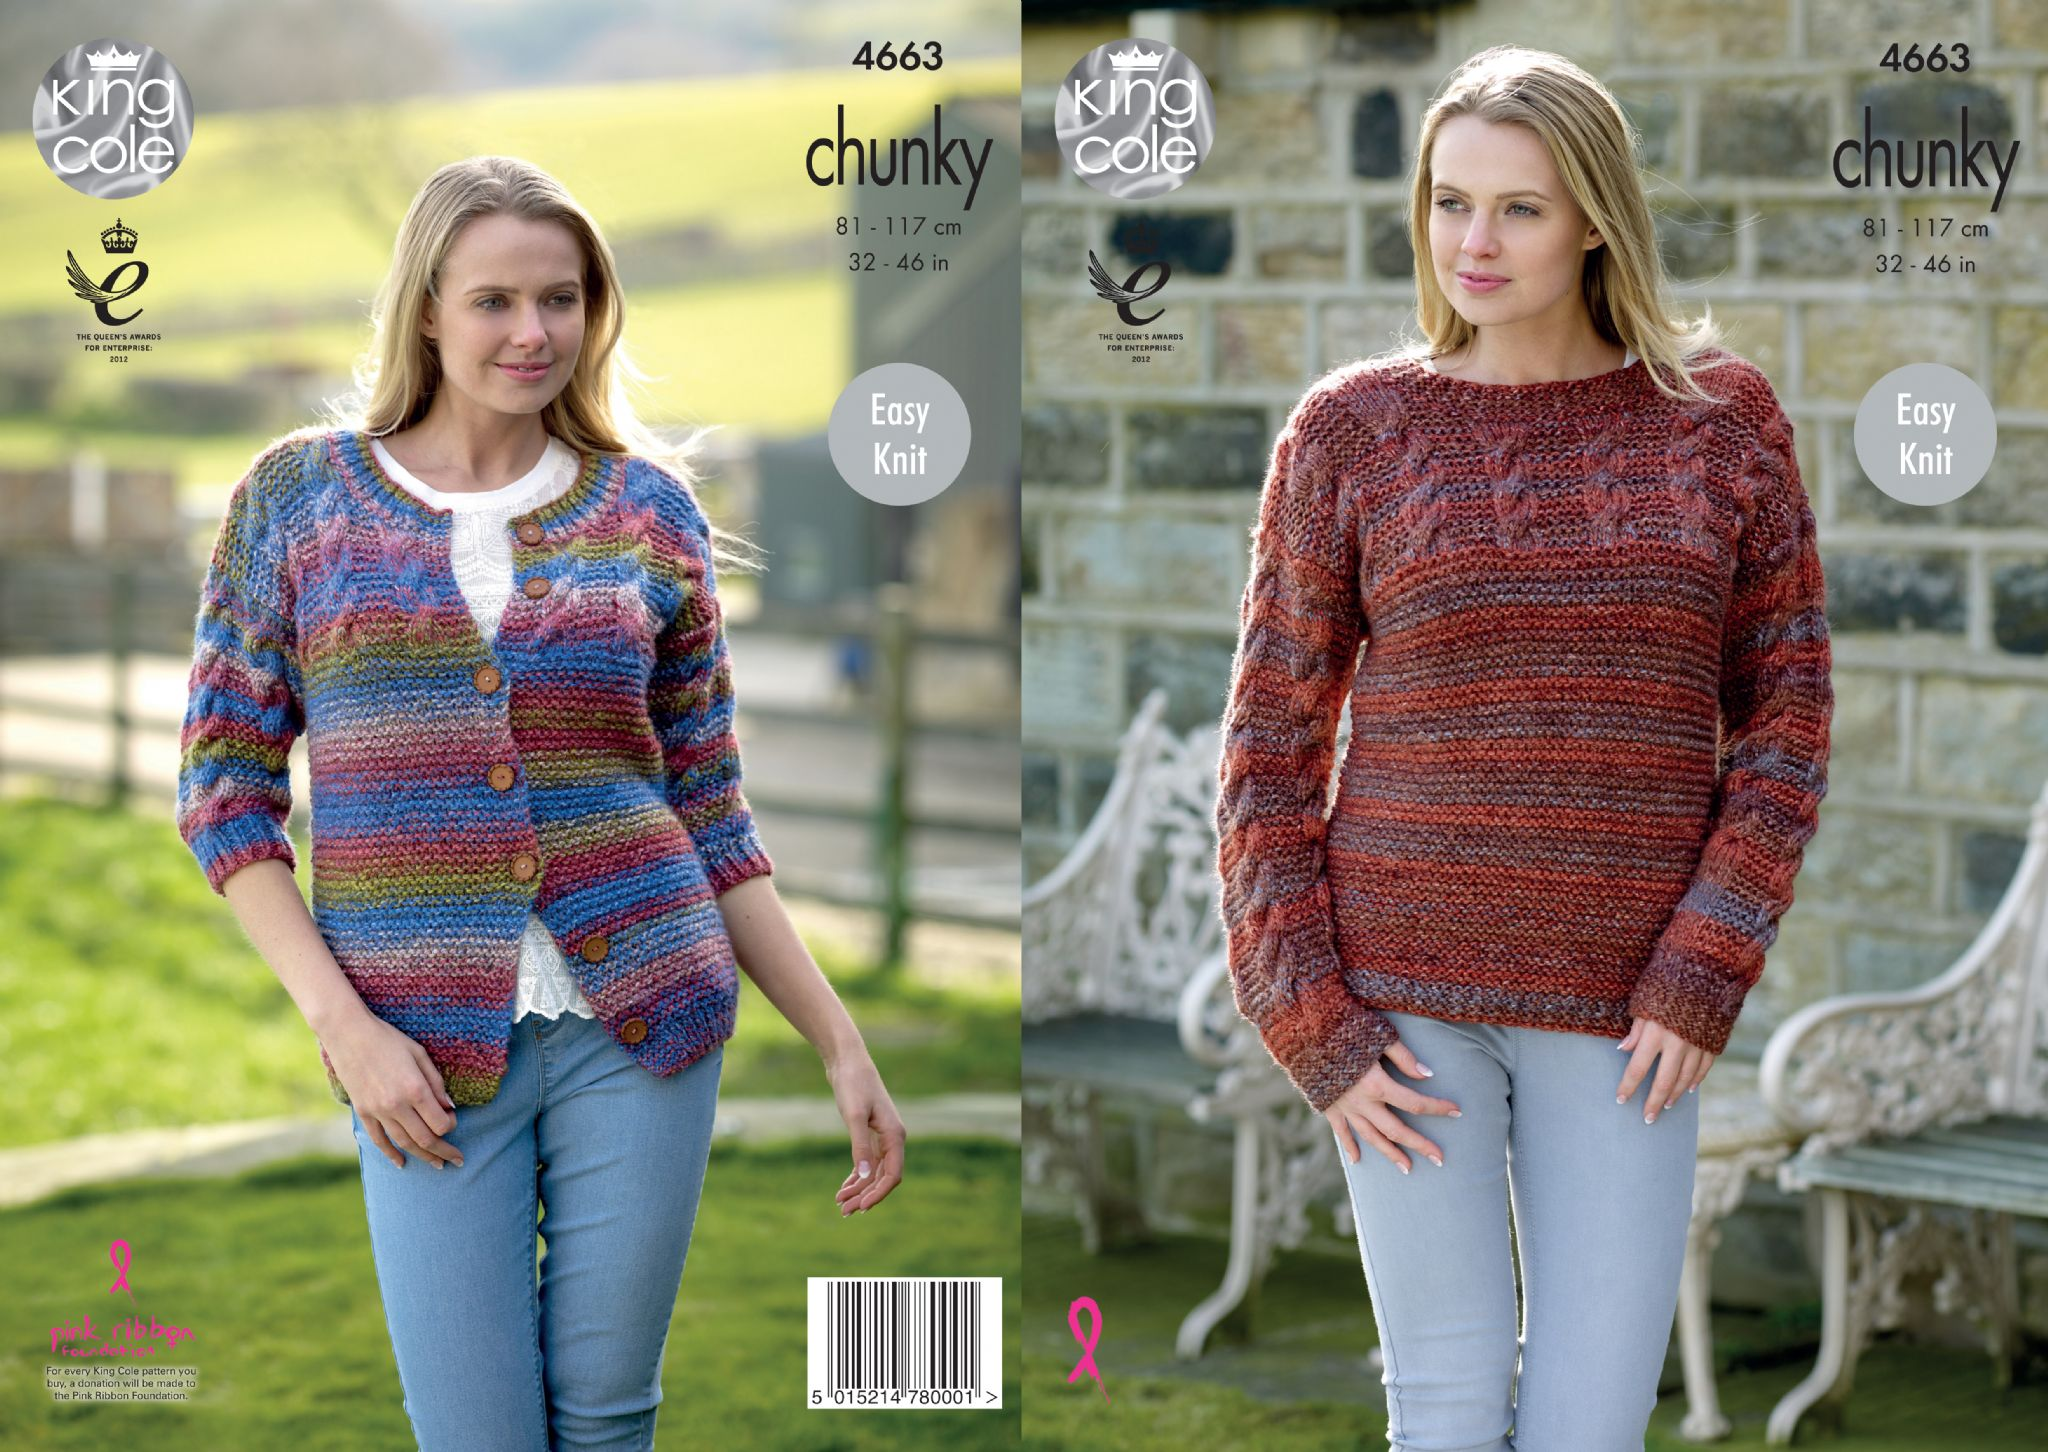 80227ecad 4663 - KING COLE CORONA CHUNKY EASY KNIT SWEATER   CARDIGAN KNITTING PATTERN  - CHEST 32 TO 46